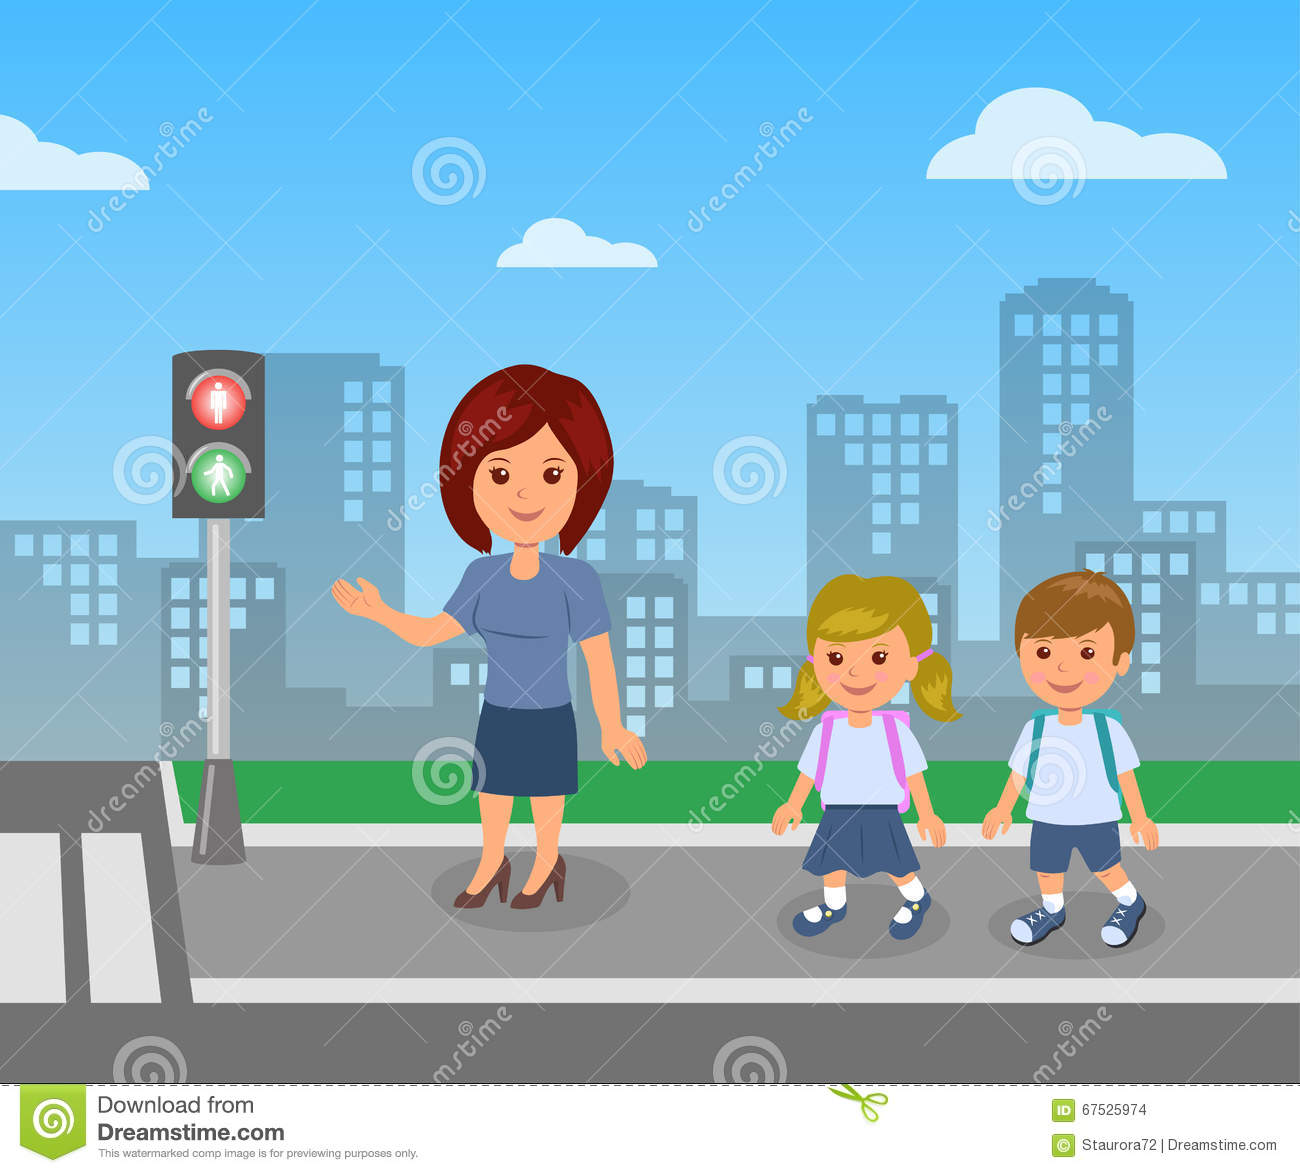 Pedestrian Traffic Light The Teacher Shows And Explains